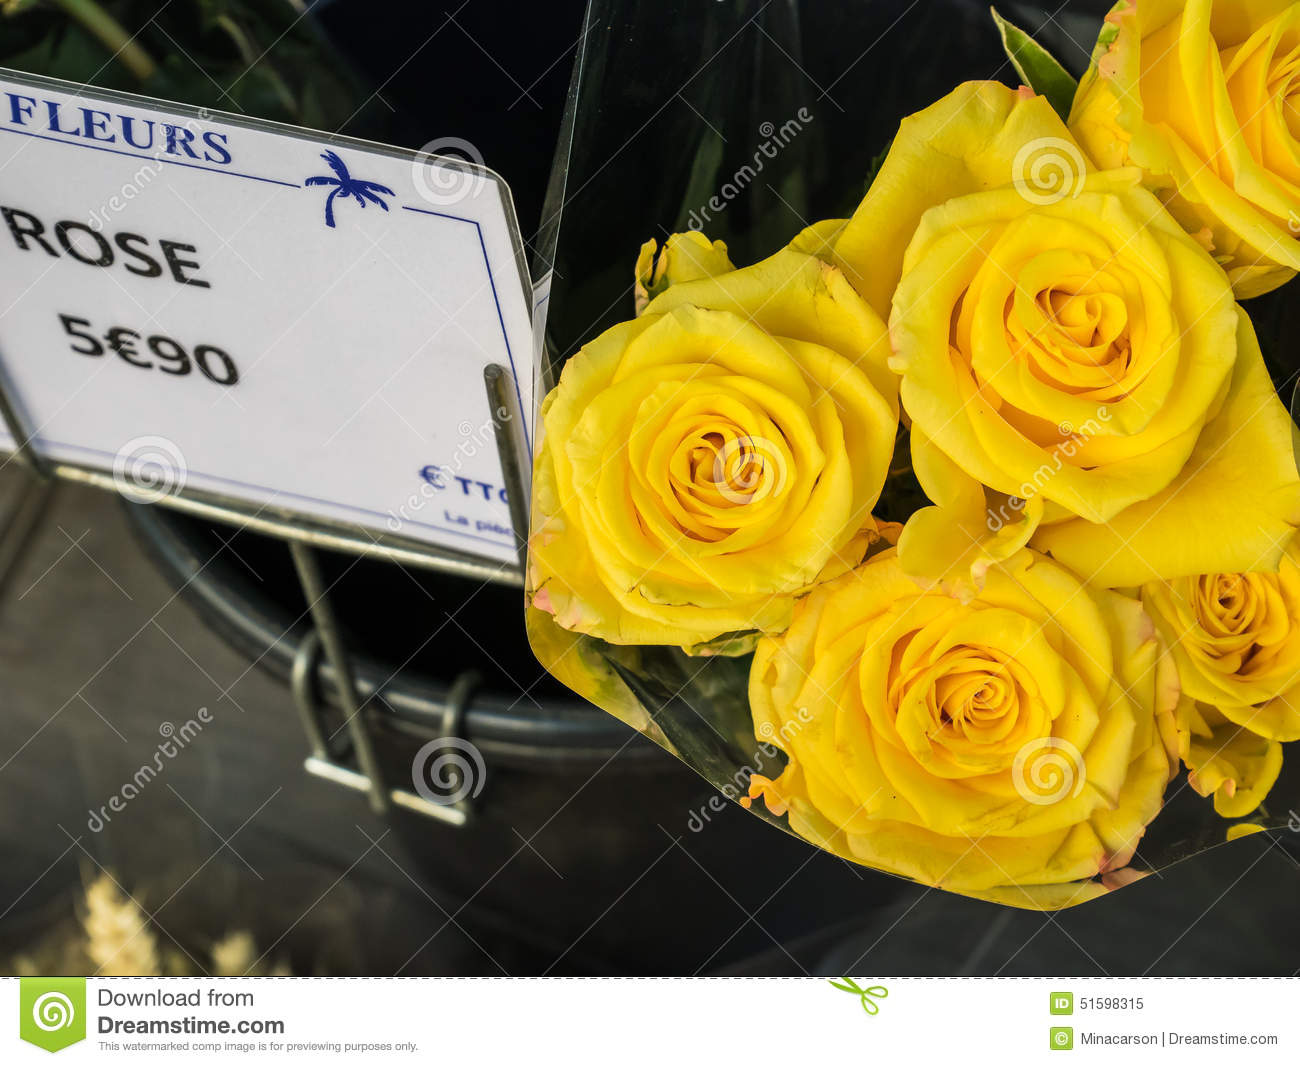 Yellow Roses With French Price Tag In Paris France Stock Image